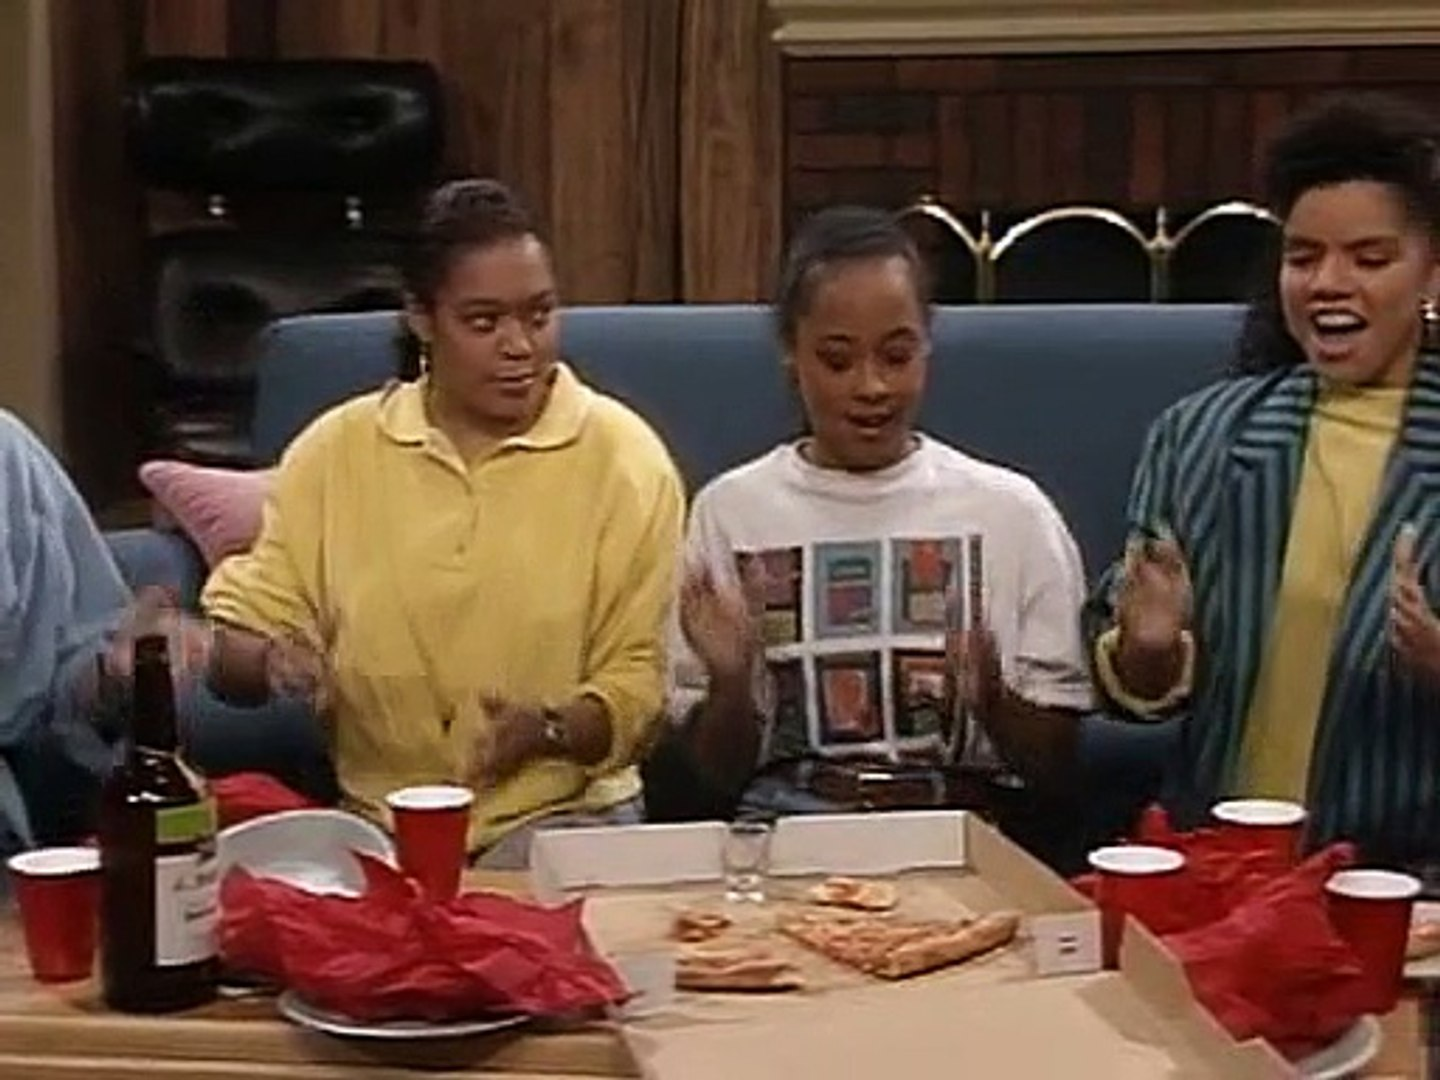 The Cosby Show S06E03 I'm 'ın' With The 'ın' Crowd